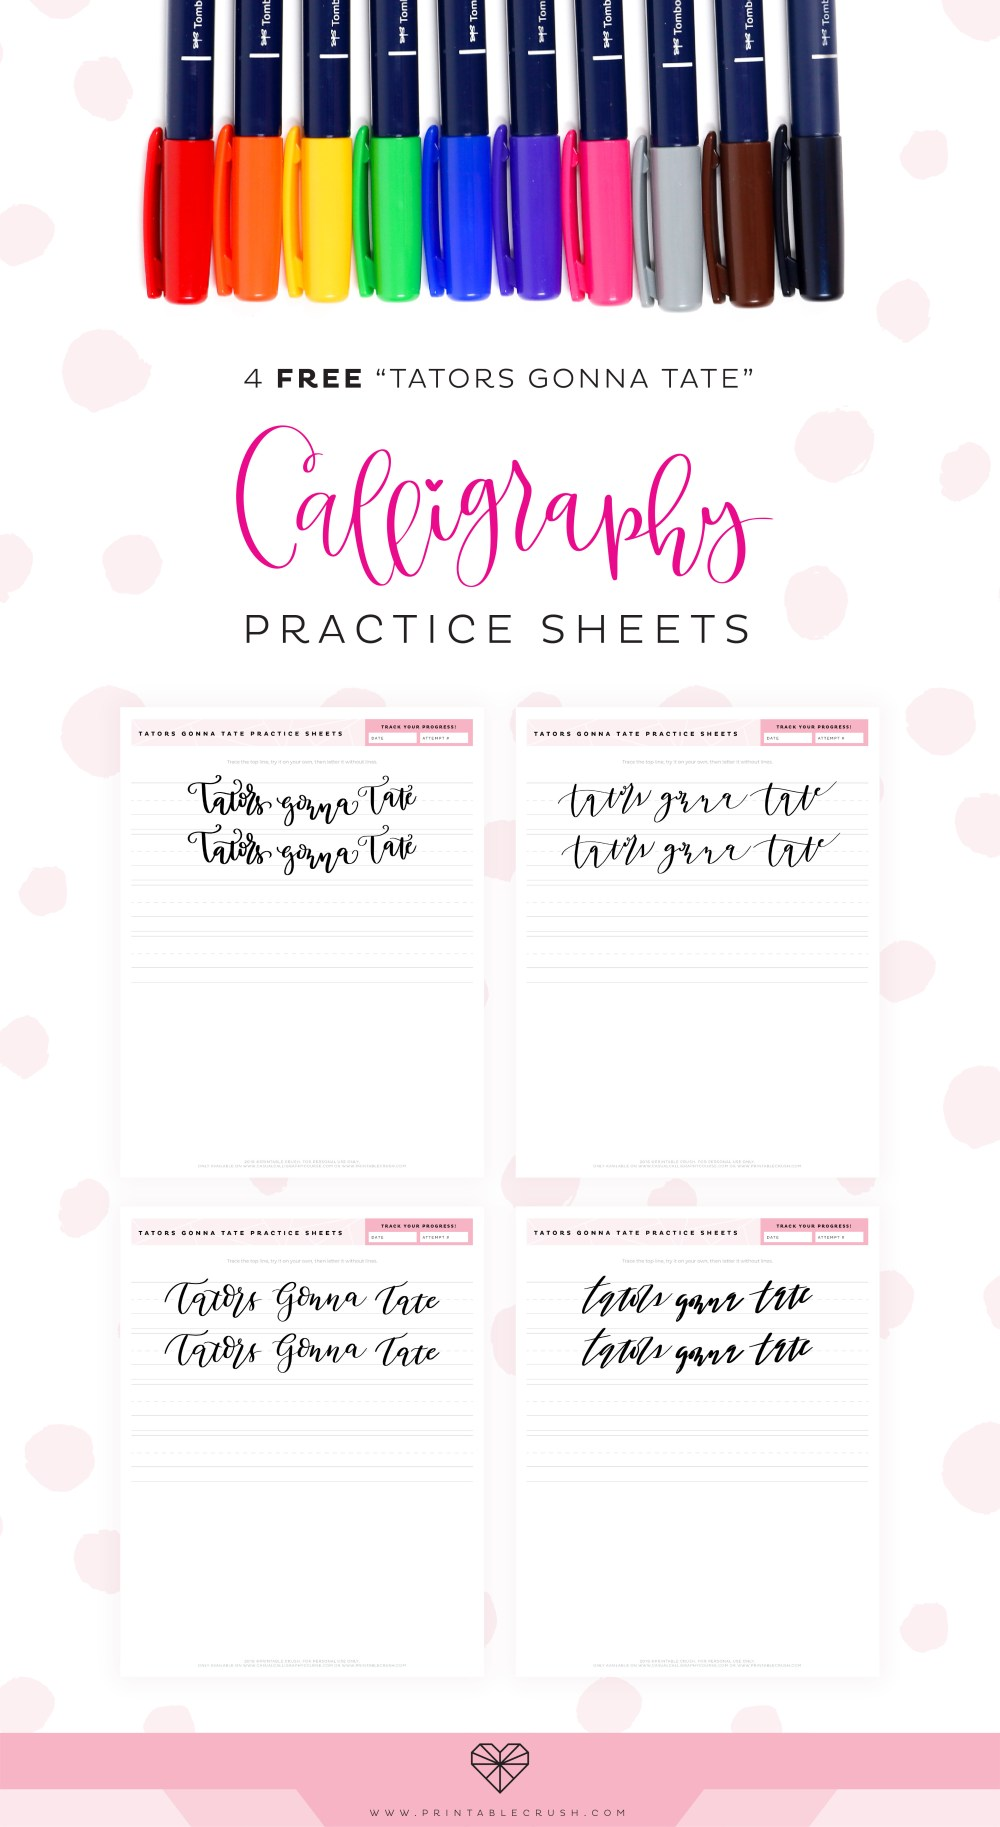 Download these FREE Tators Gonna Tate Calligraphy Practice Sheets to improve your calligraphy skills!  #tombowpro #casualcalligraphy #calligraphytemplate #casualcalligraphycourse #brushlettering #calligraphy #letteringideas #letteringworksheets #calligraphyworksheets #moderncalligraphy via @printablecrush